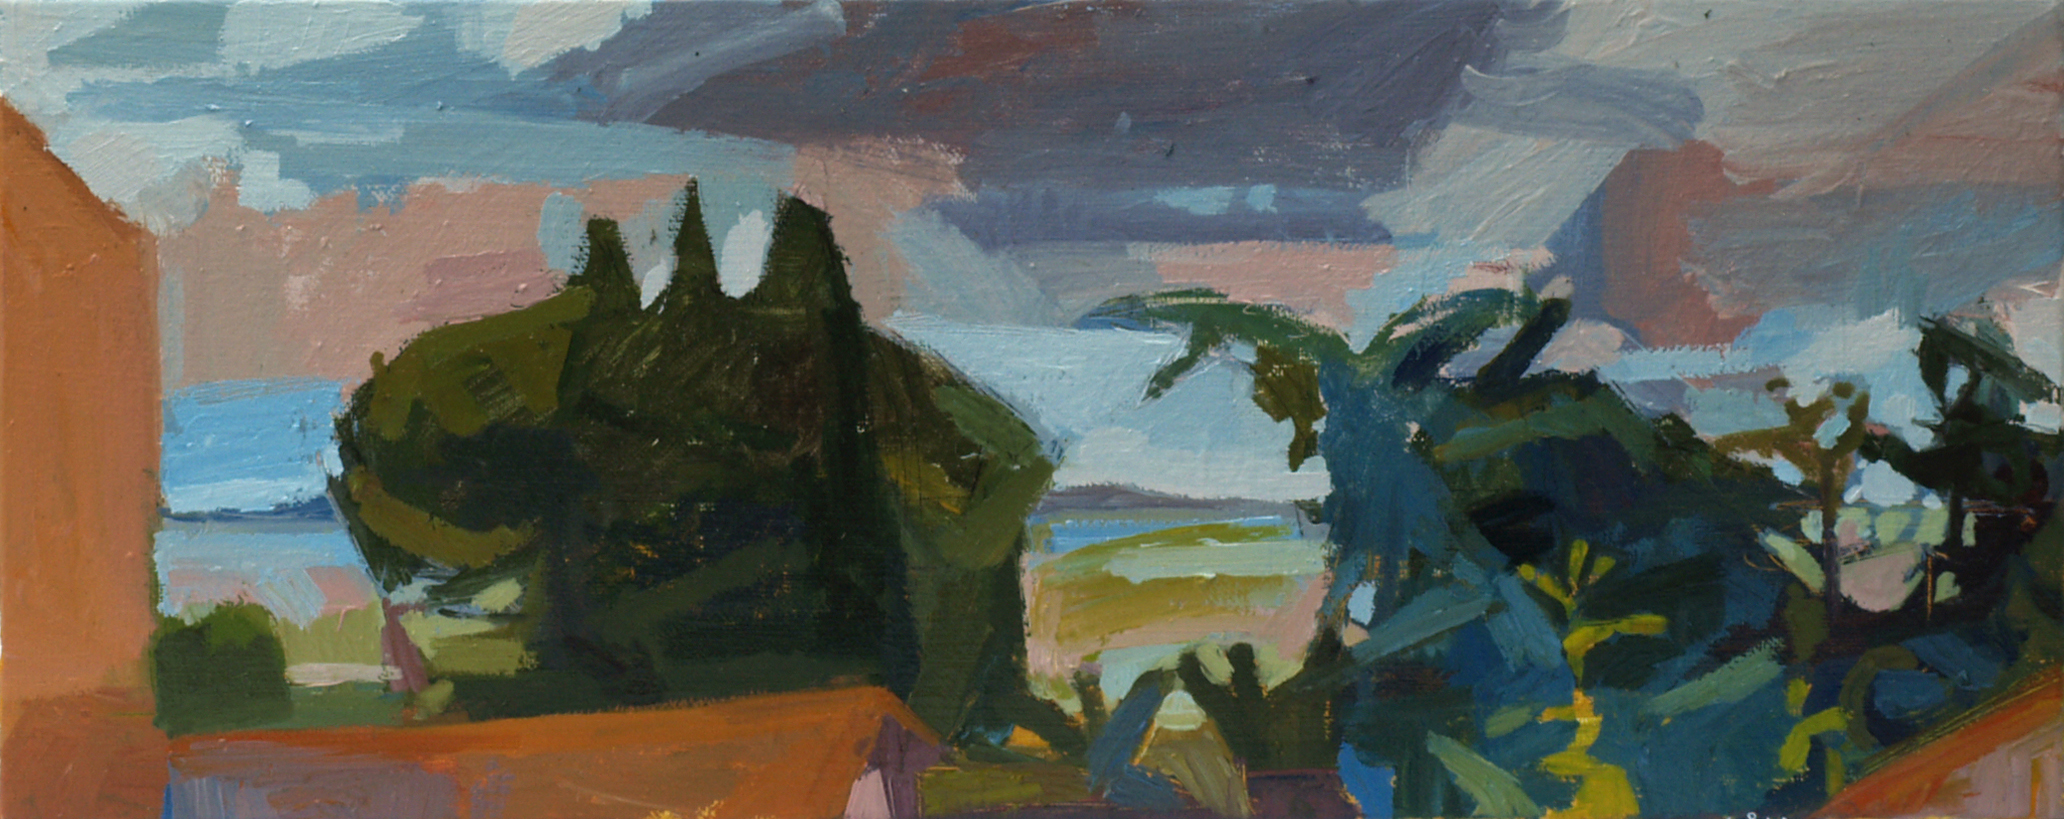 over the lake_Oil on Canvas_2014.JPG